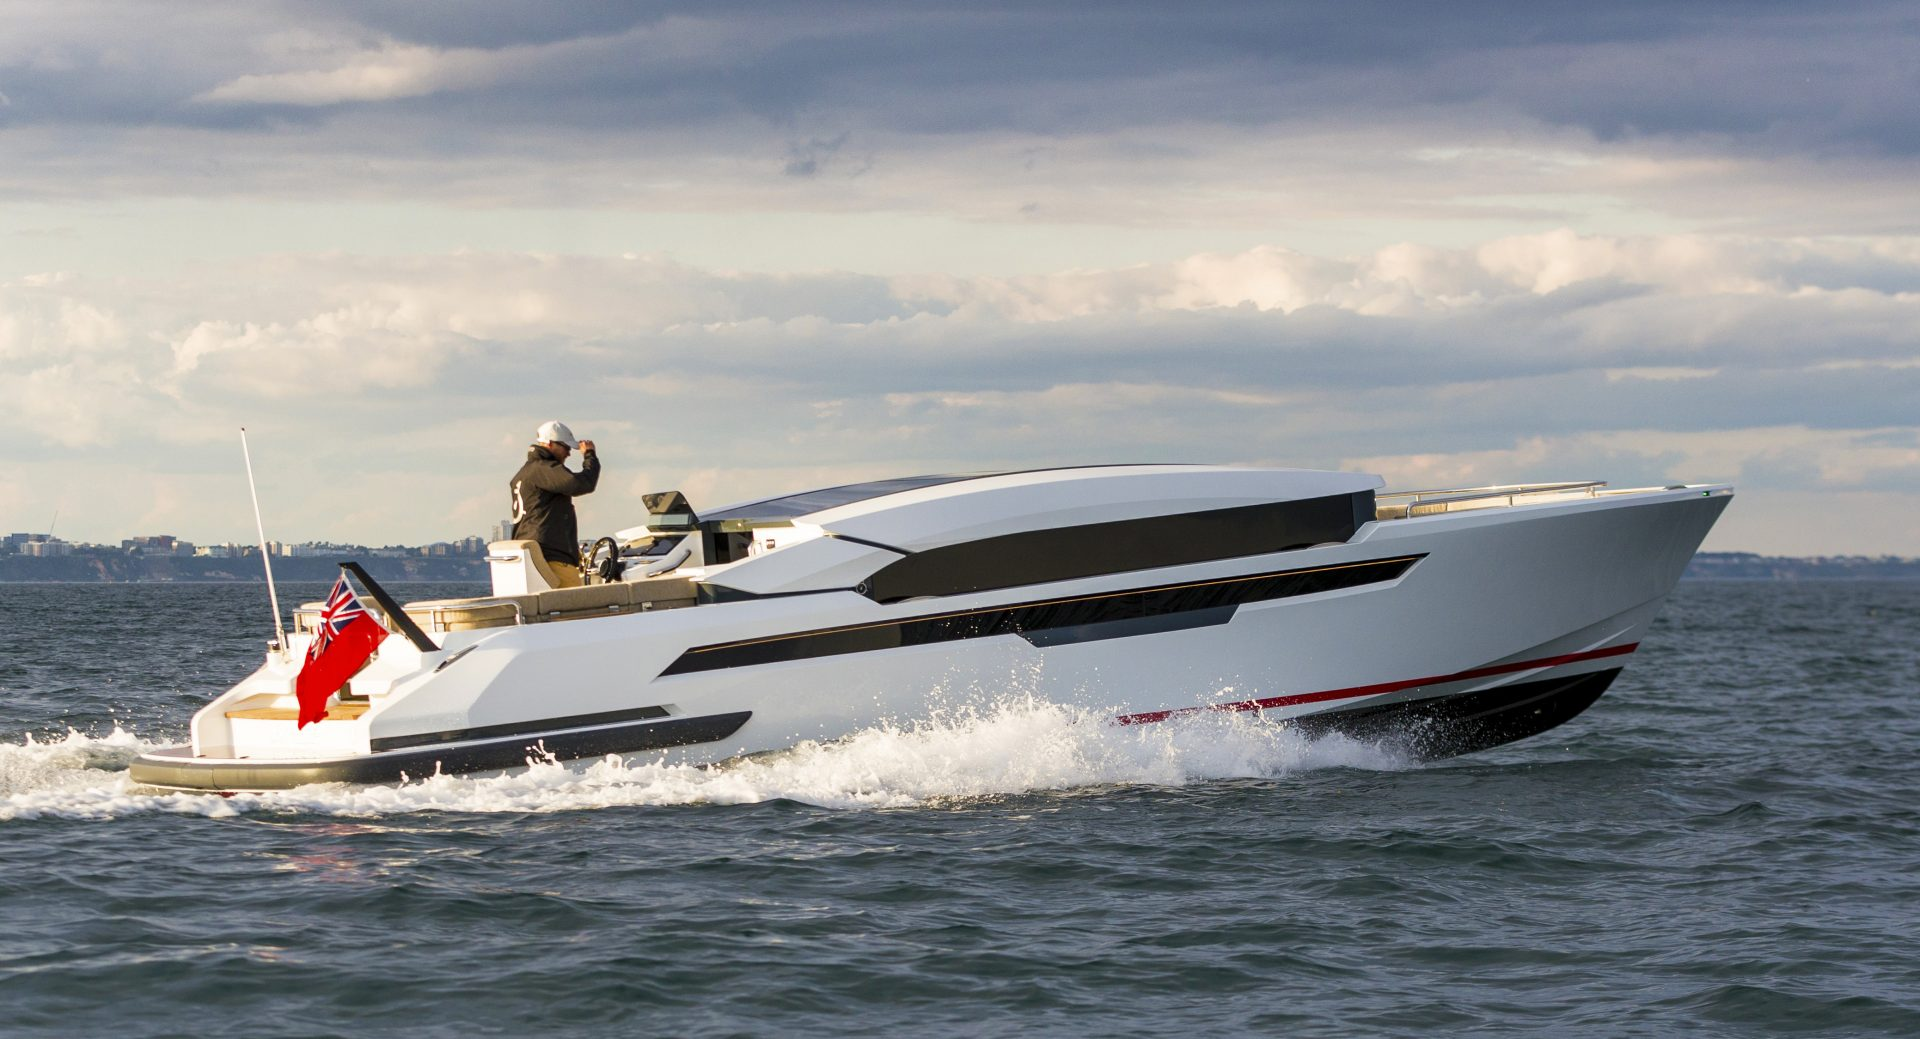 Compass Tenders' 10.9m custom Limousine tender